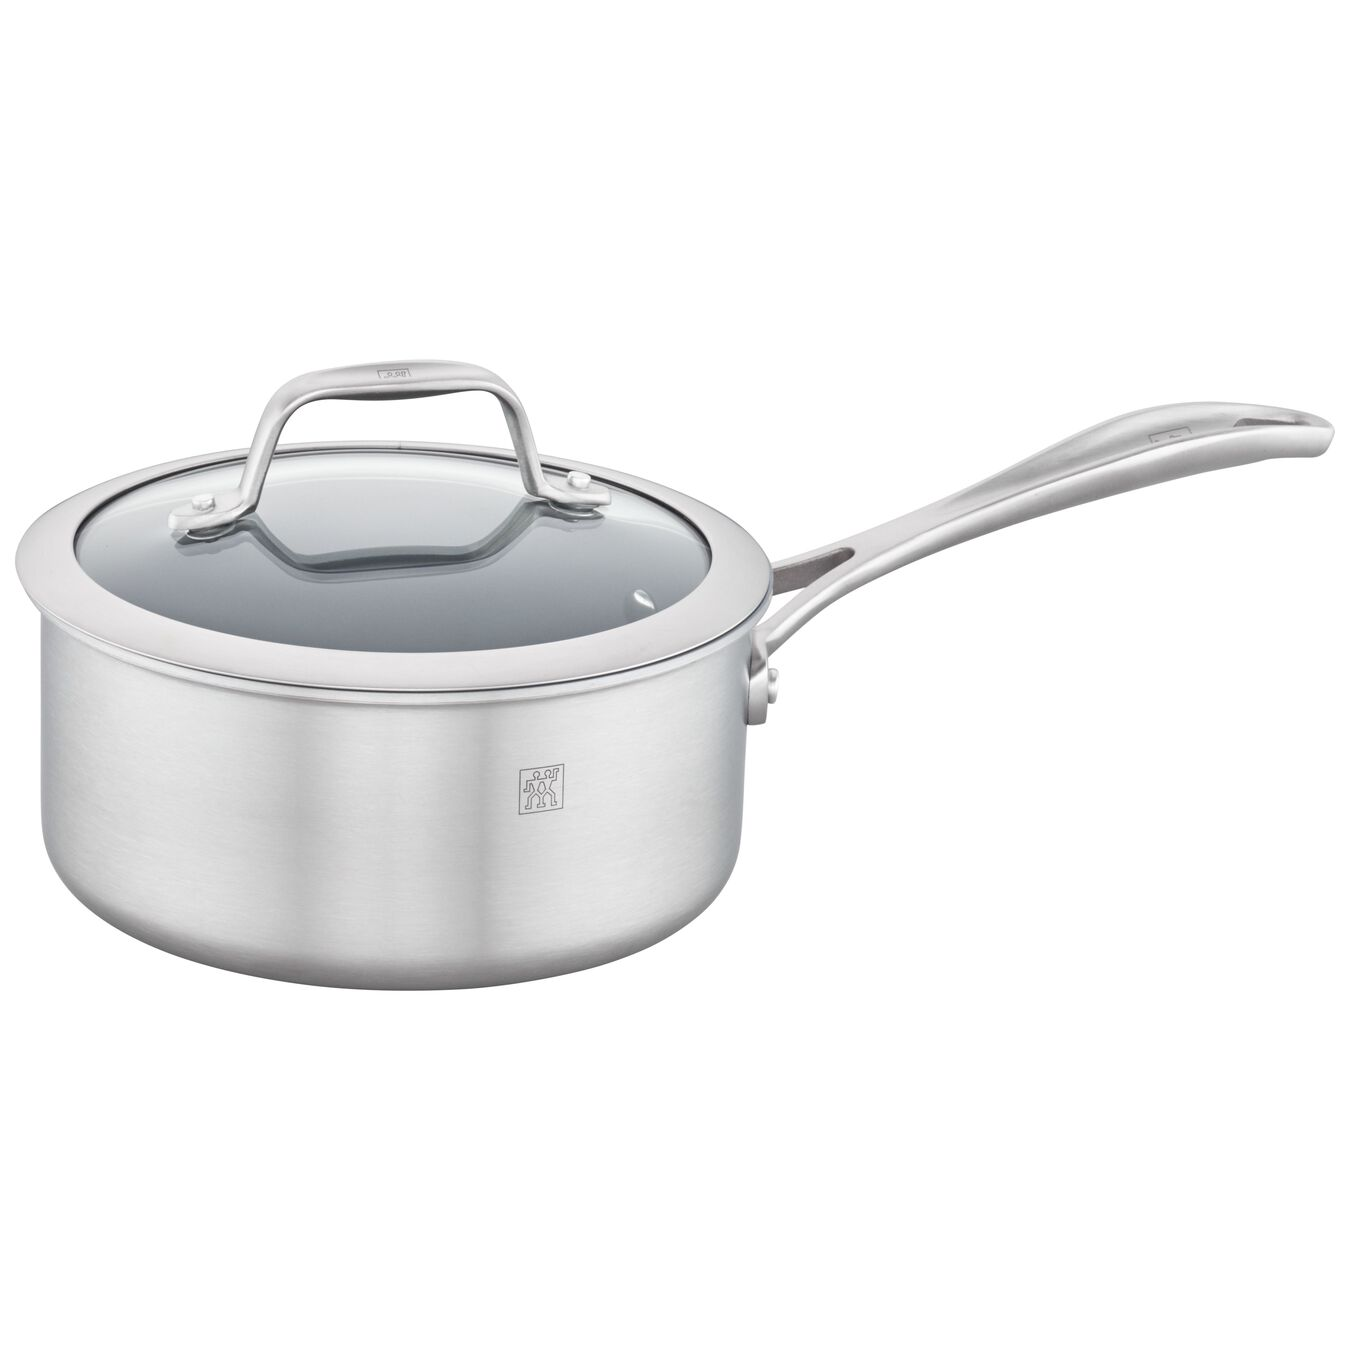 3-ply 2-qt Stainless Steel Ceramic Nonstick Saucepan,,large 1